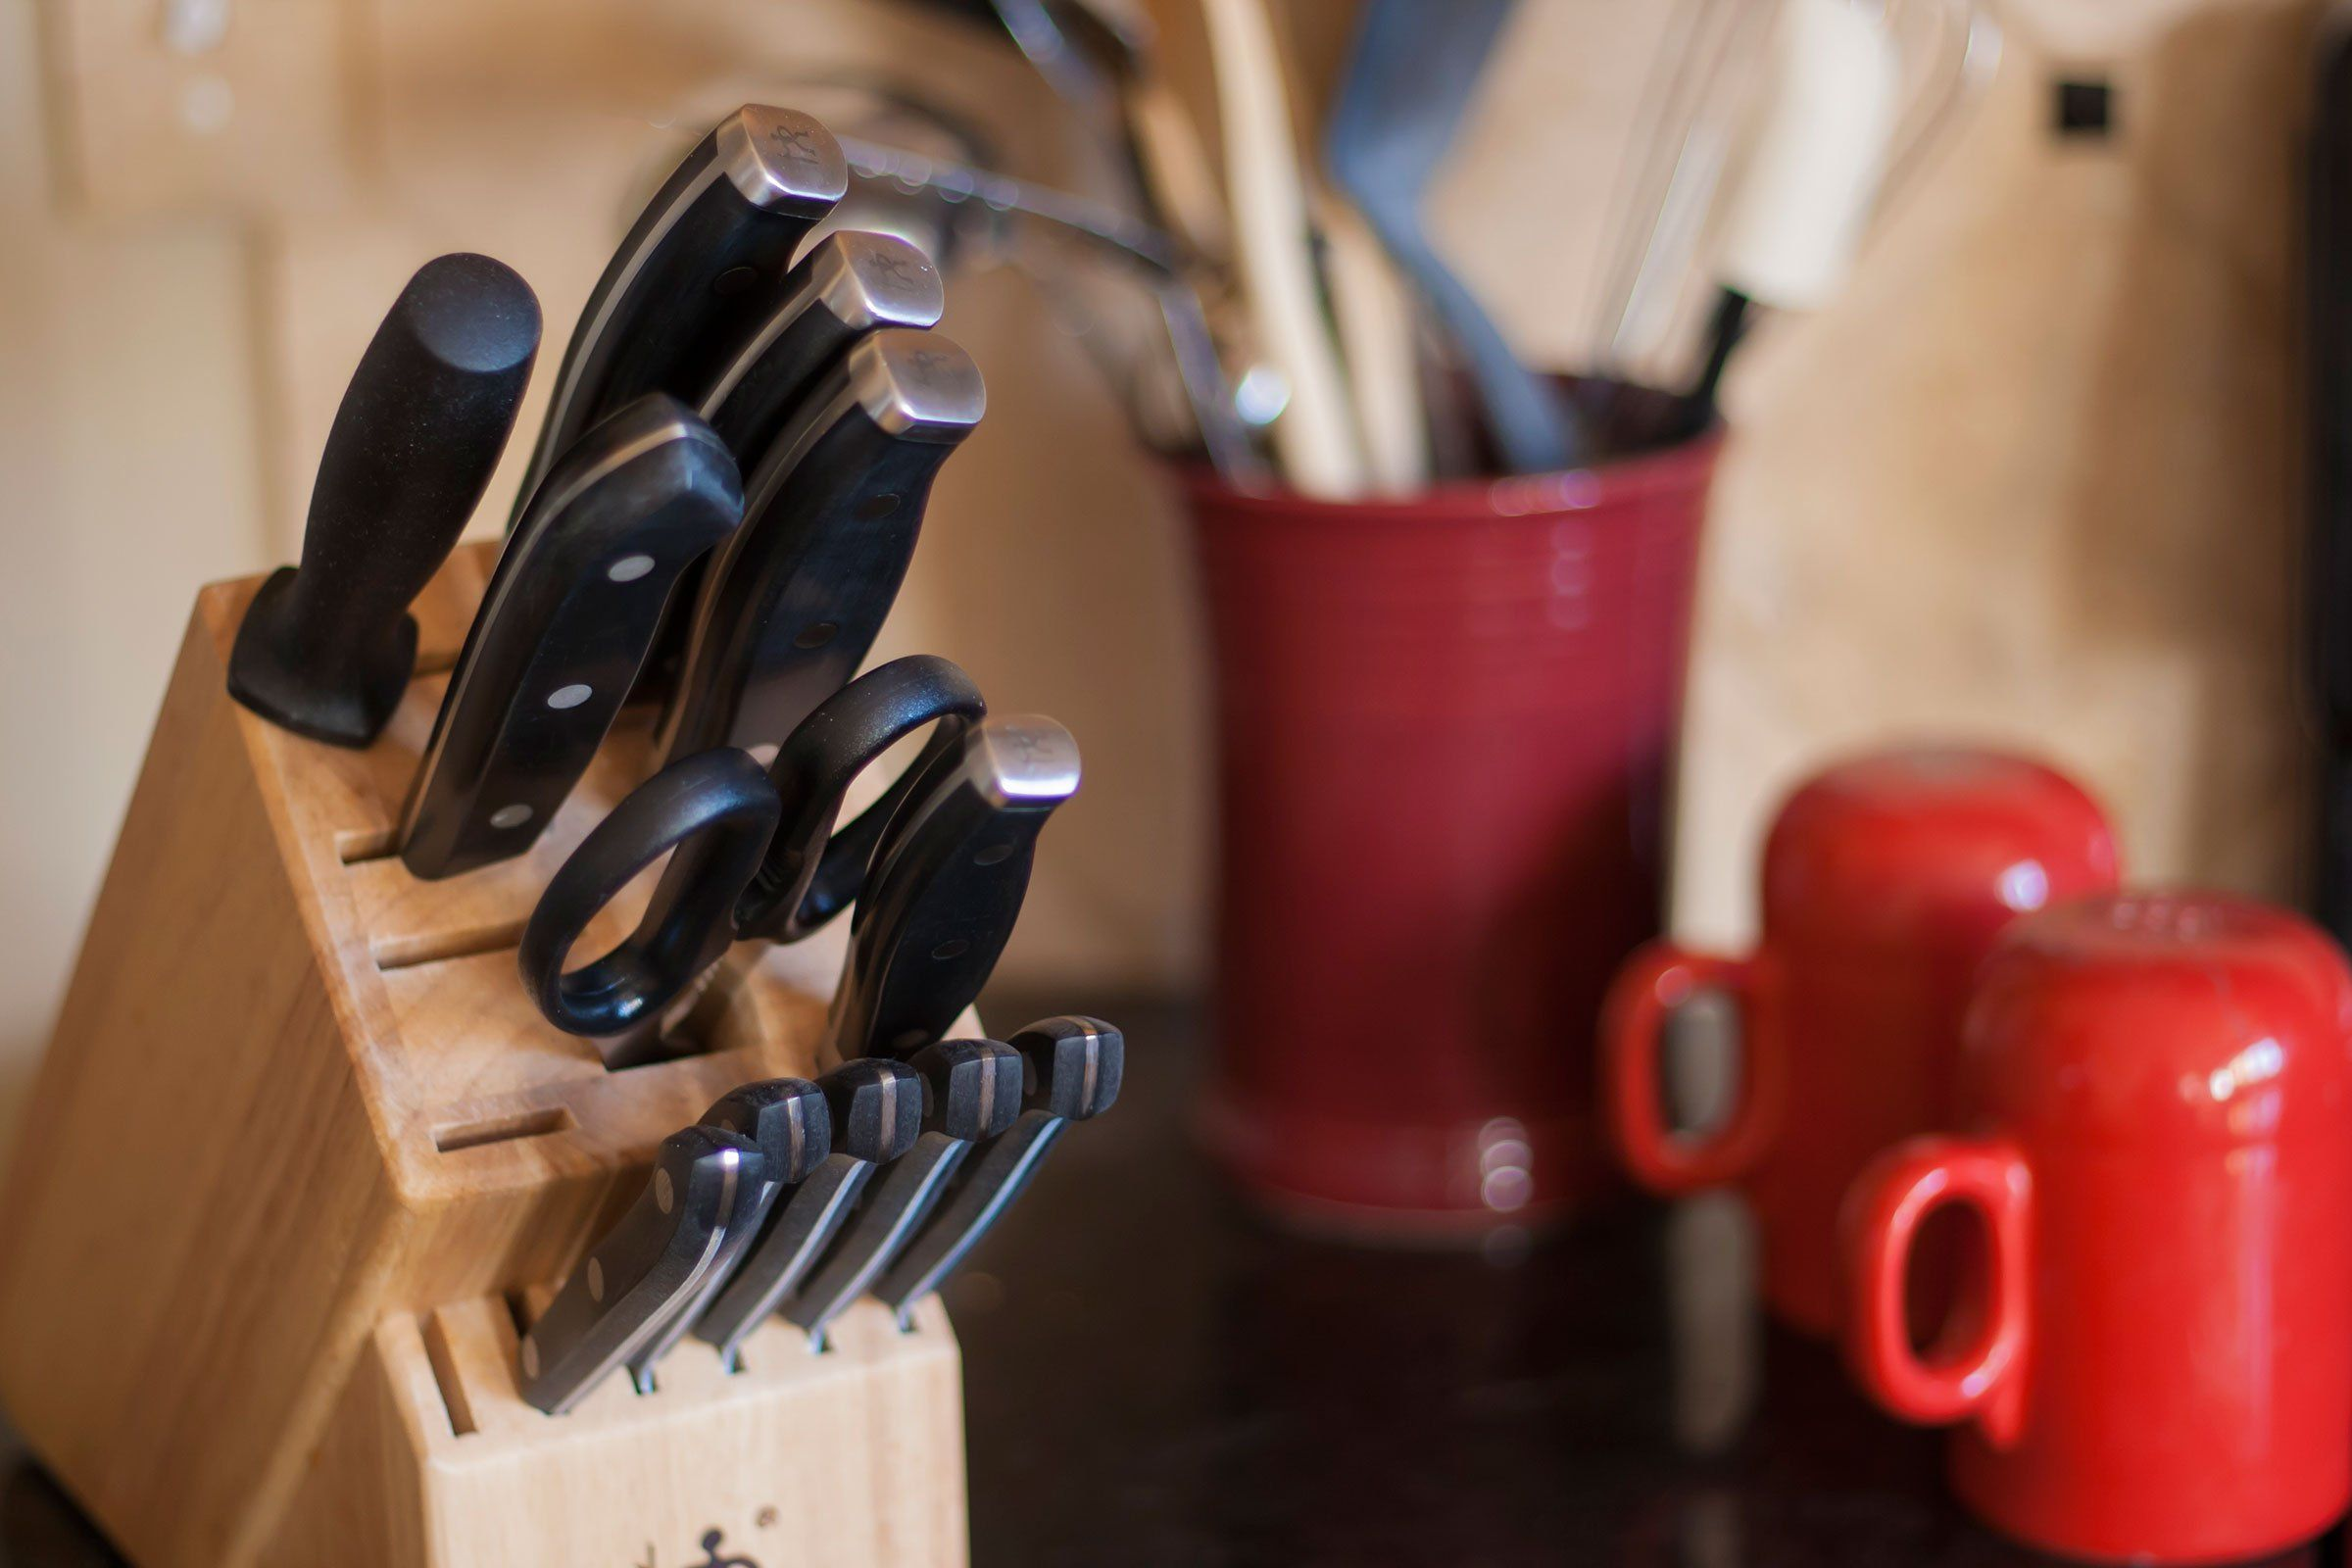 7 Surprisingly Germy Kitchen Items You Never Think To Clean Mesmerizing Kitchen Items Inspiration